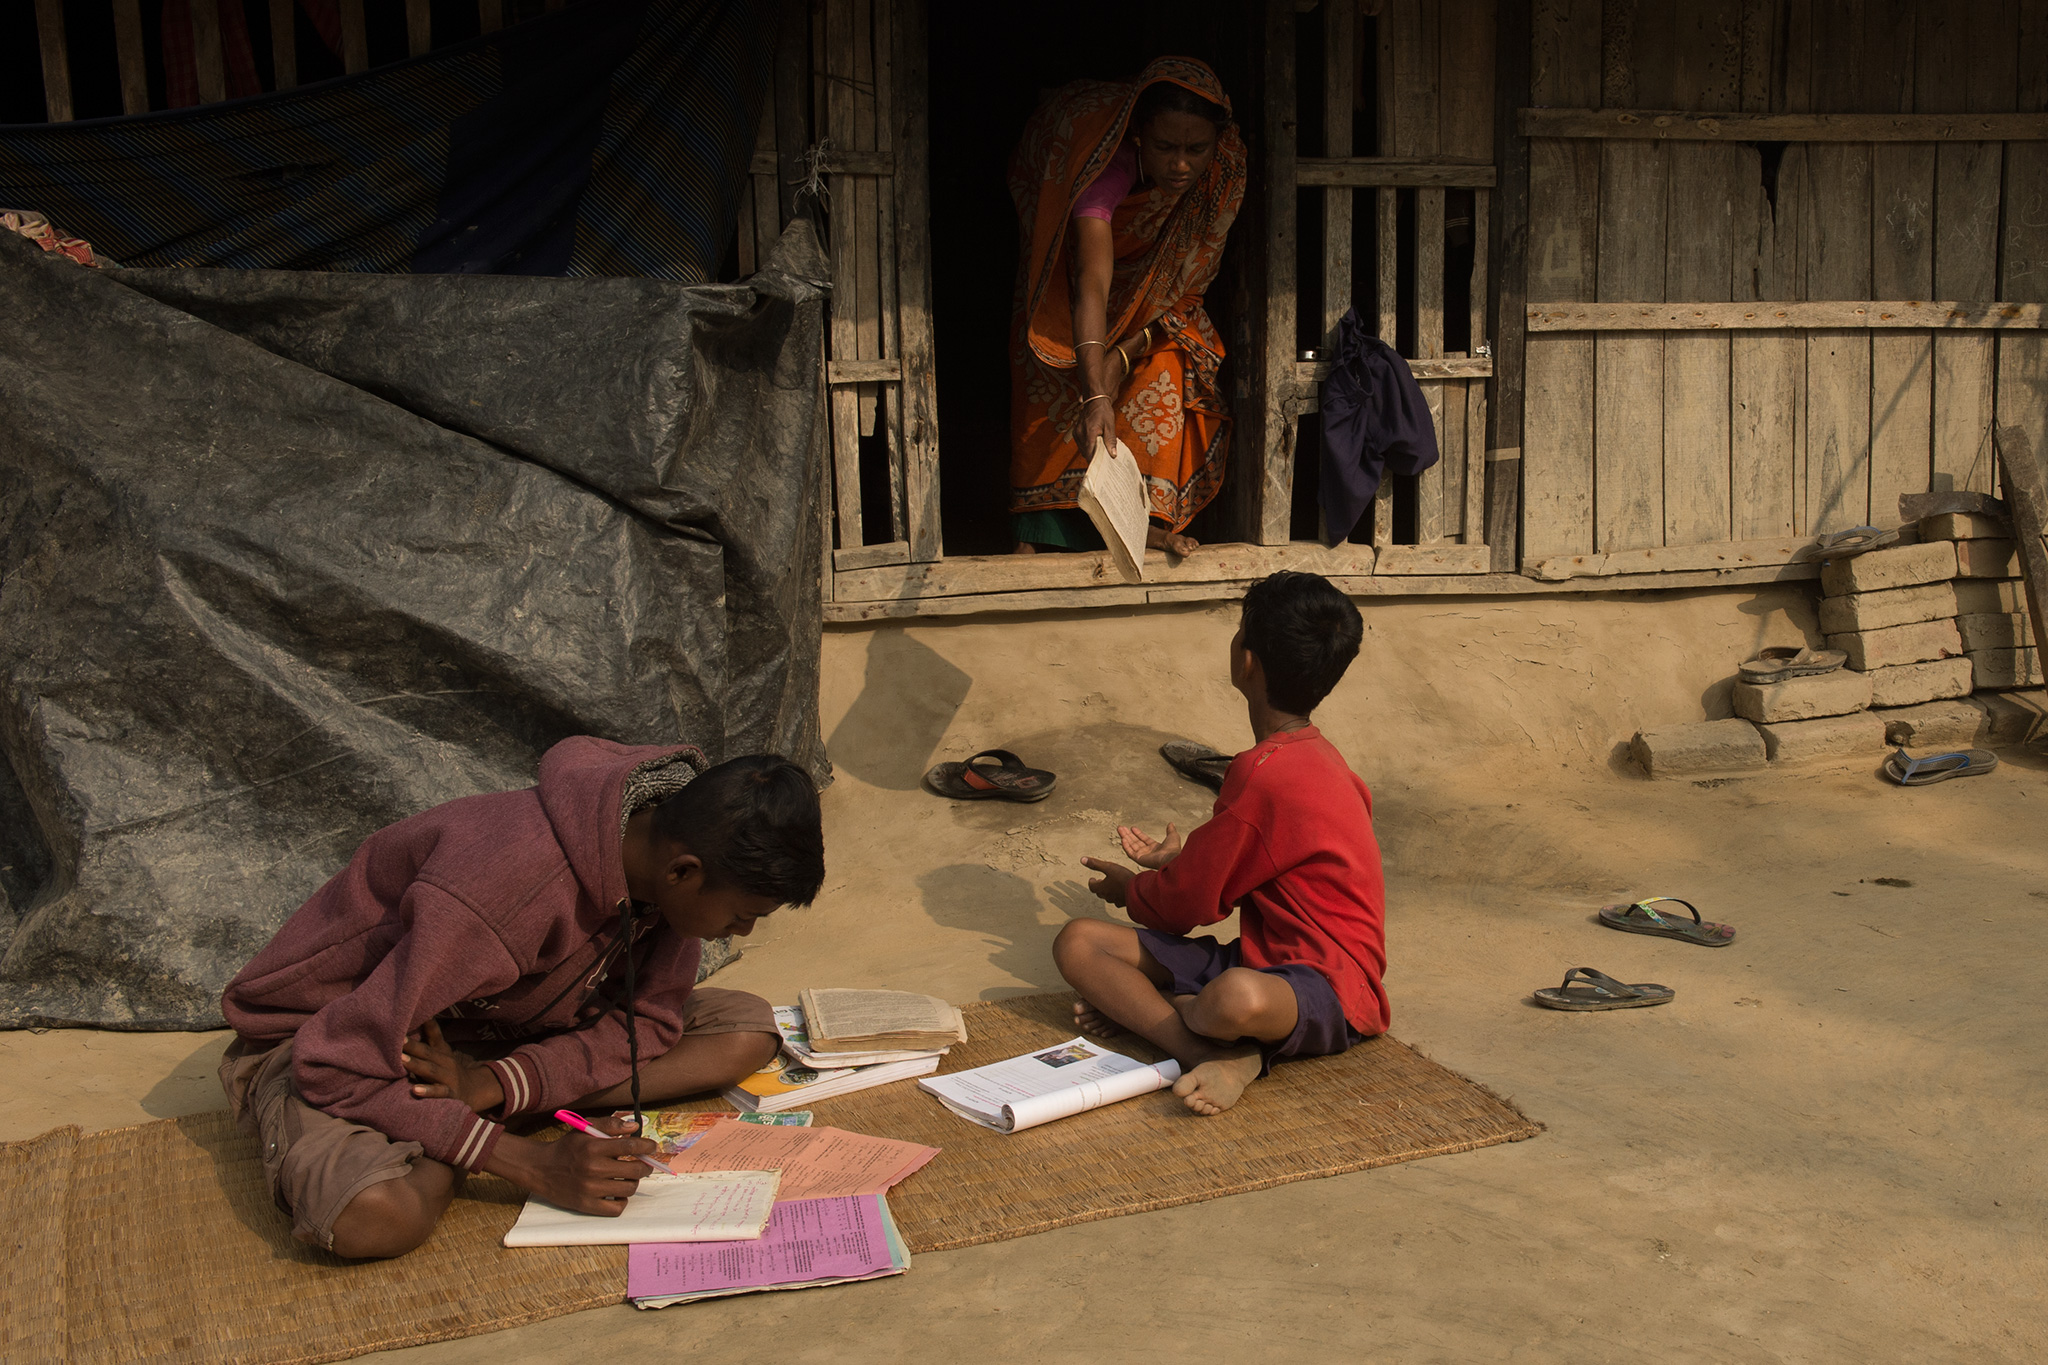 she is doing everything for the kids to be educated. but seeing his mother struggle, Bappa, the older boy, wants to go off to find work in a far away city after his 10th. He wants to help ease her workload.